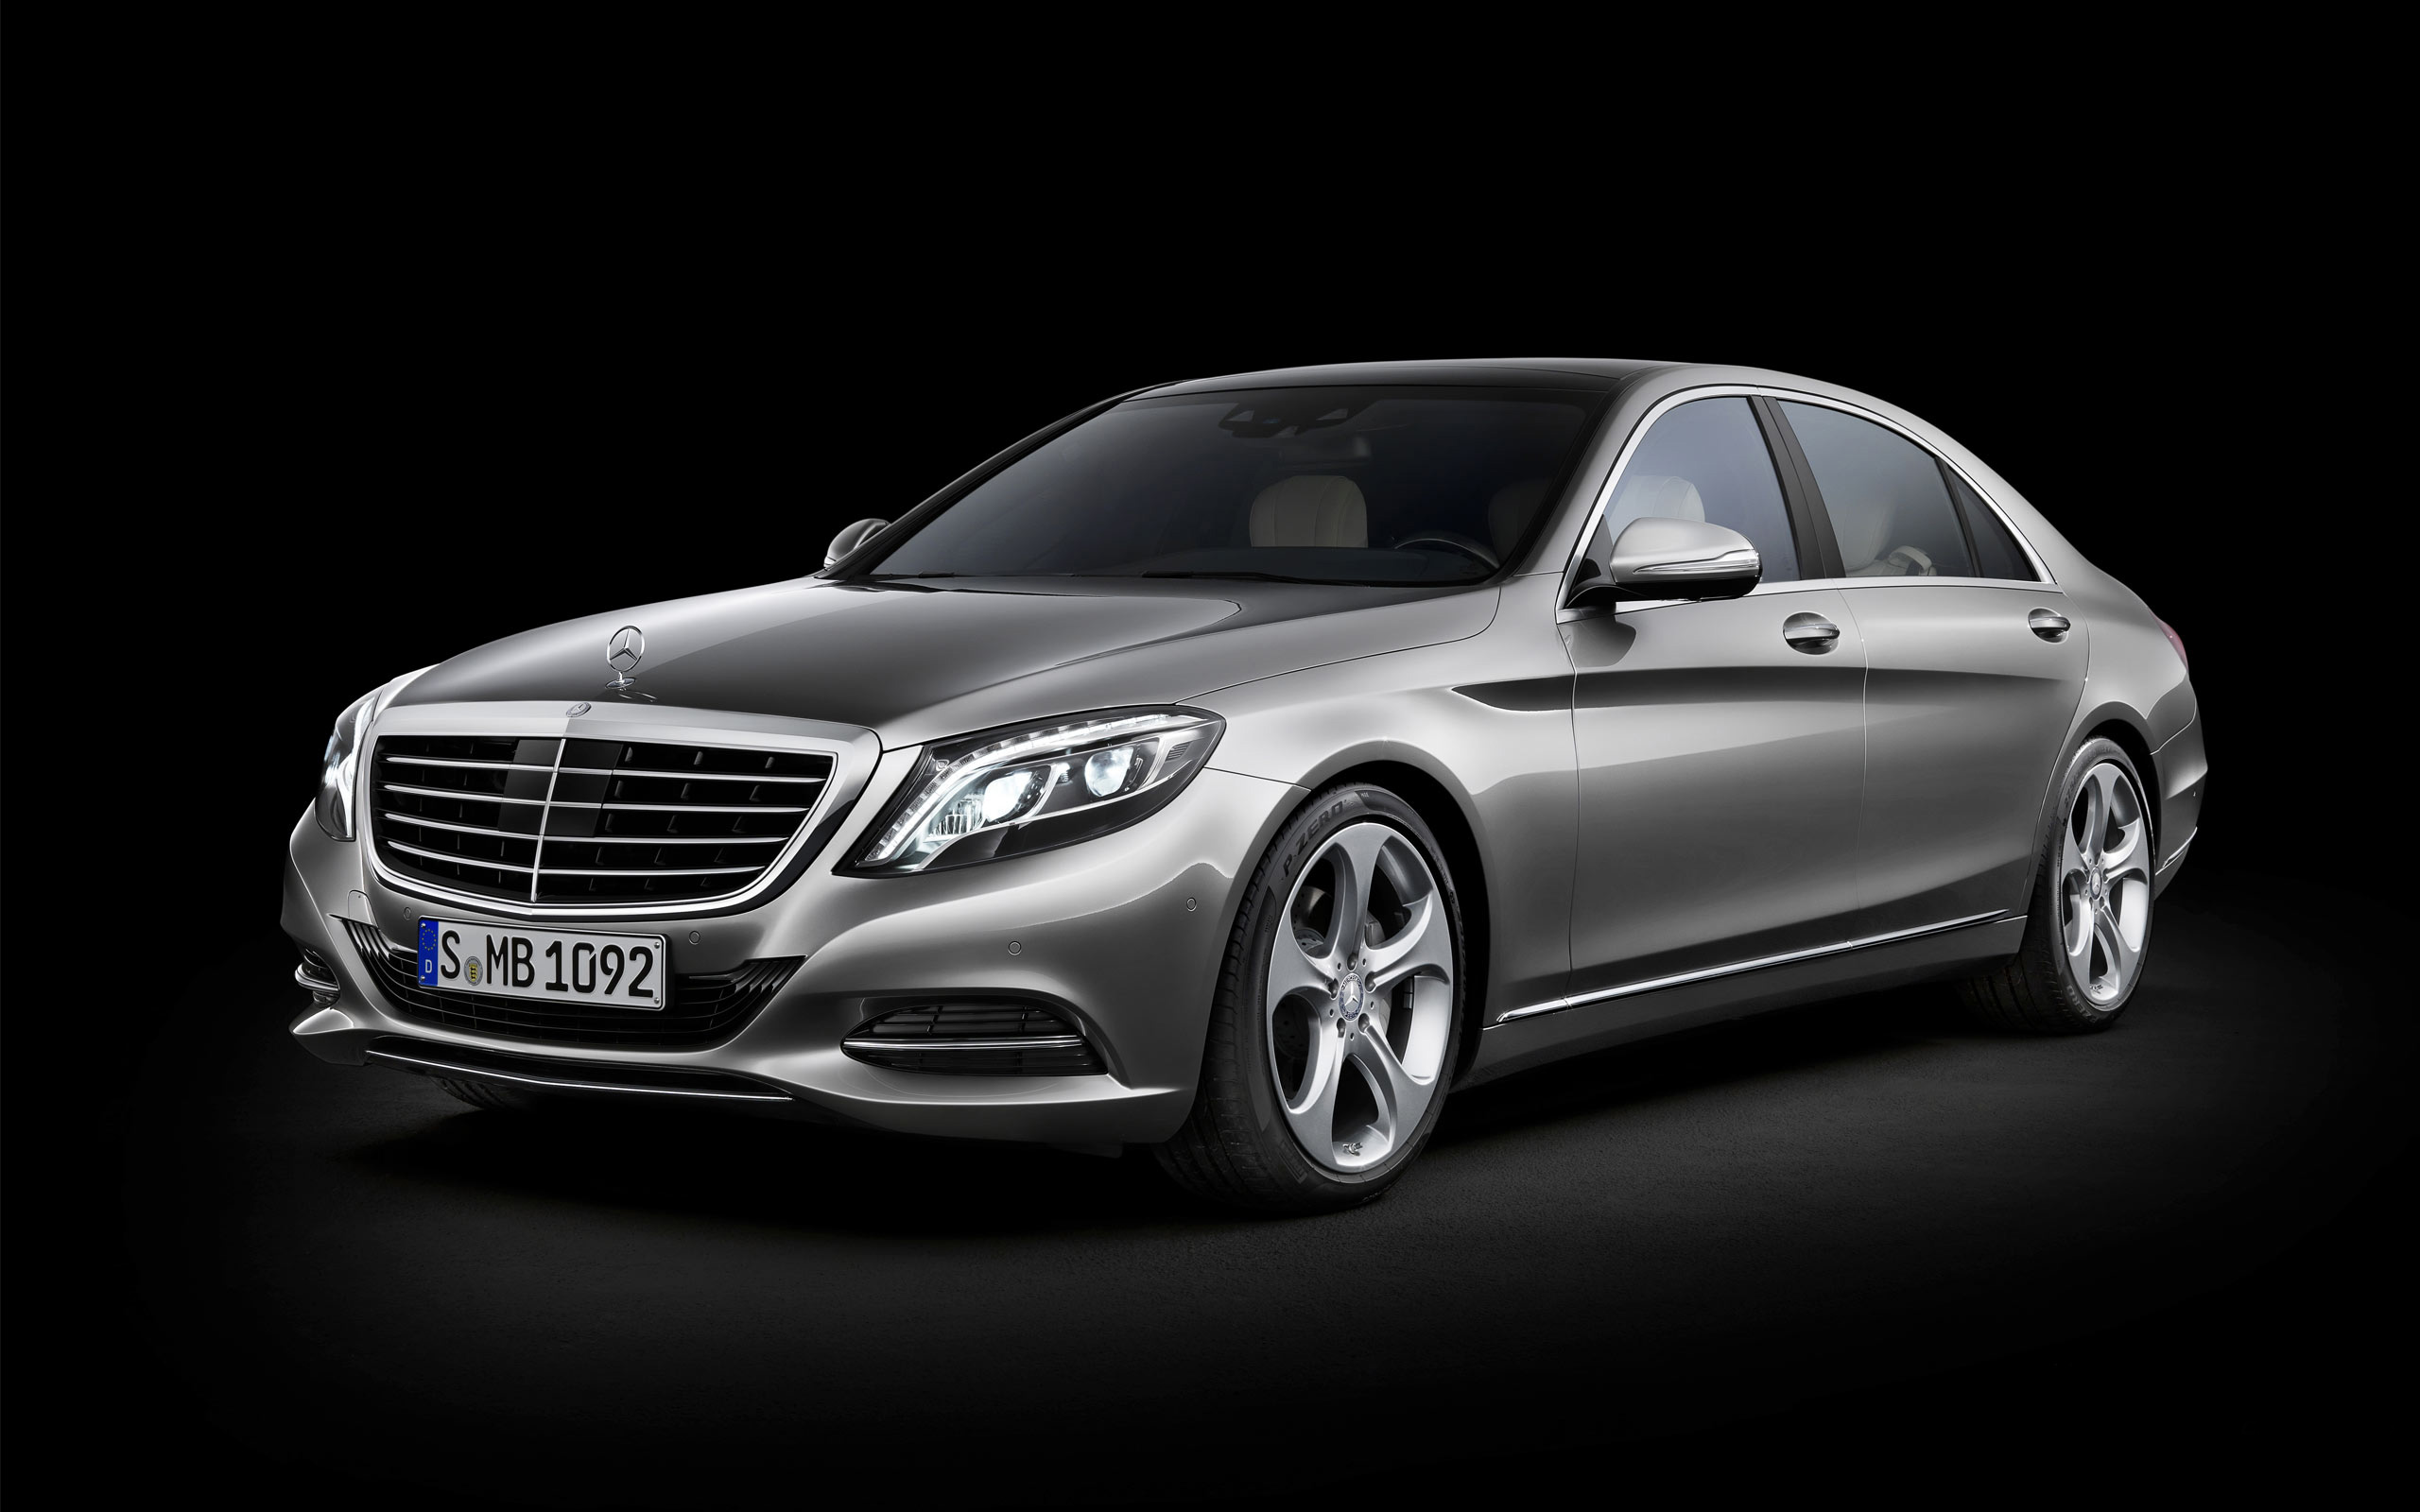 2014 mercedes benz s class wallpaper hd car wallpapers for Mercedes benz 2014